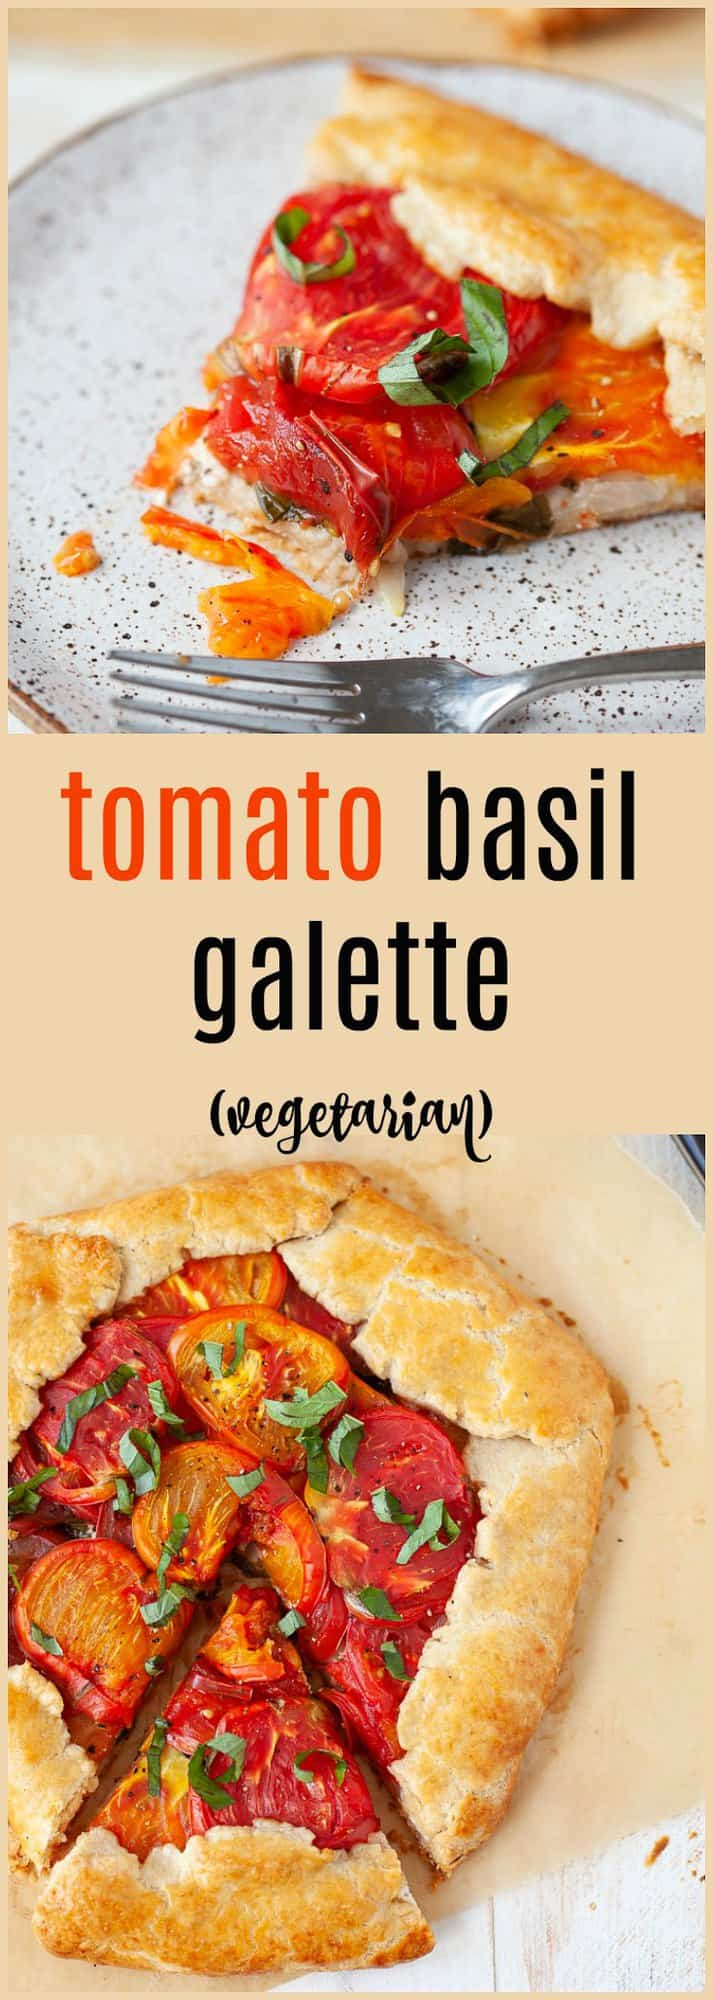 Easy, delicious and perfectly savory, this heirloom tomato basil galette with goat cheese is basically a fancier version of pizza. Pie for dinner? Need I say more?